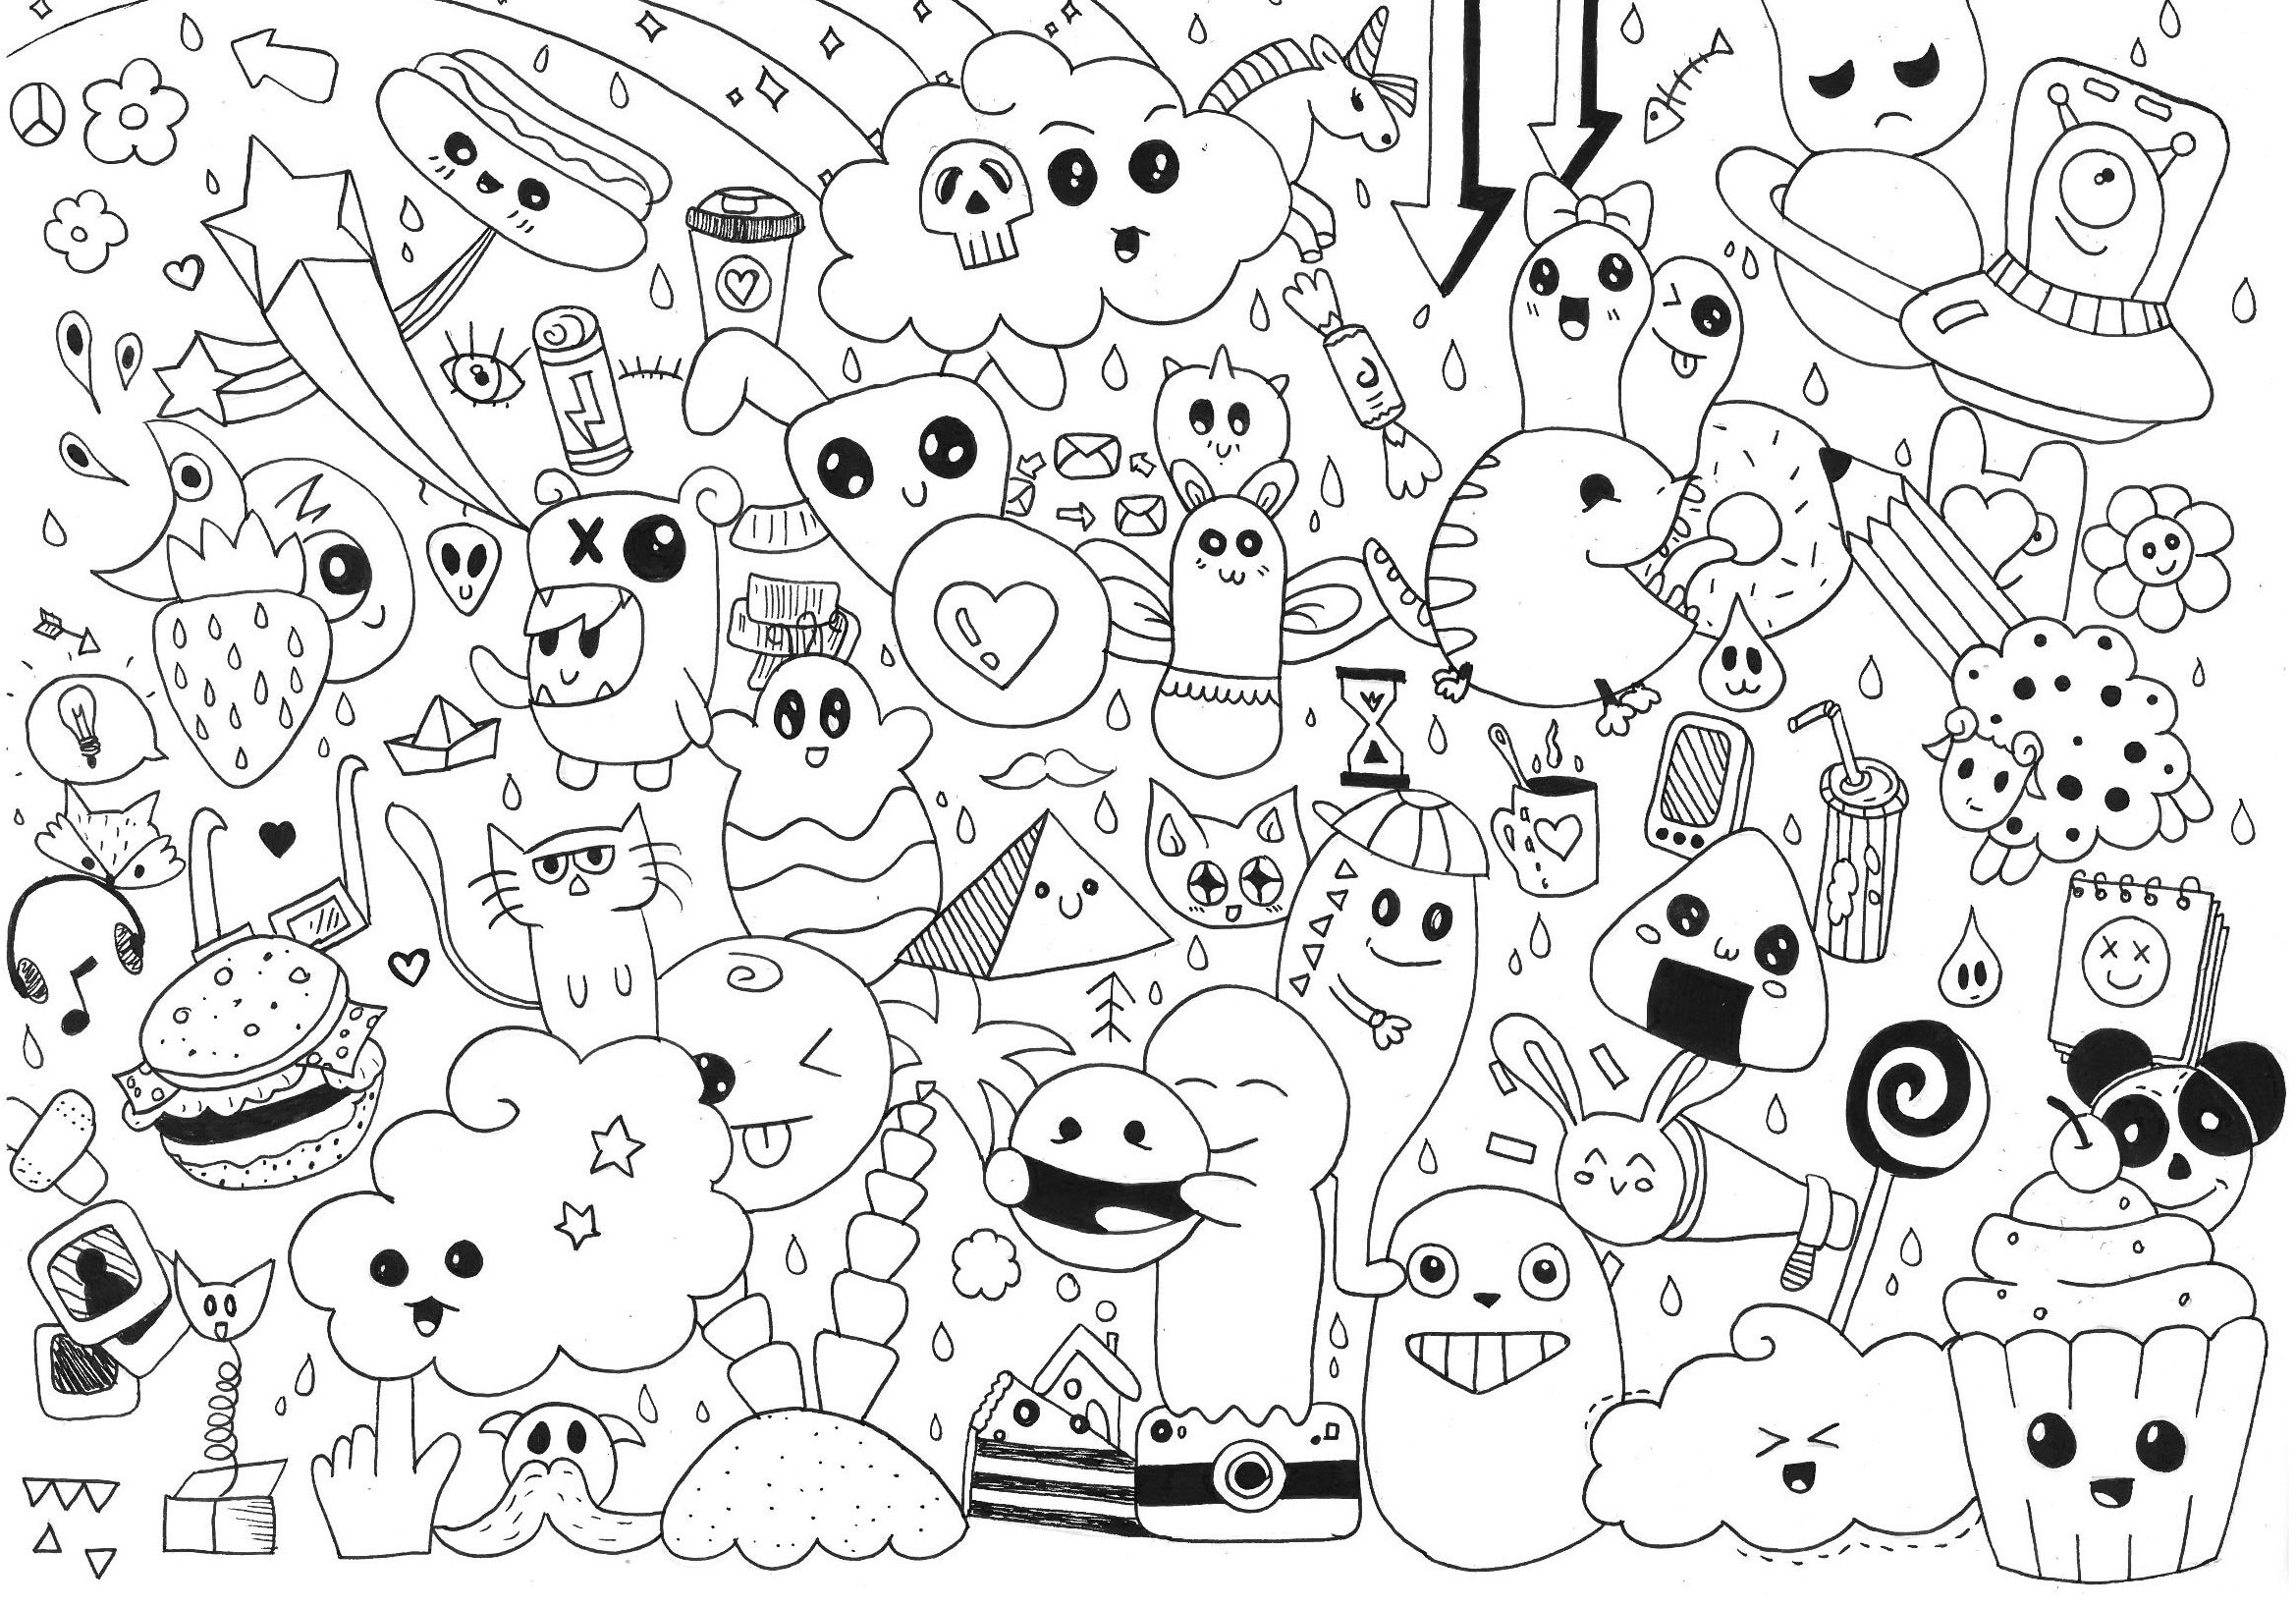 Coloring ~ Doodle Art Coloring Pages Www Allanlichtman Com For - Free Printable Doodle Art Coloring Pages